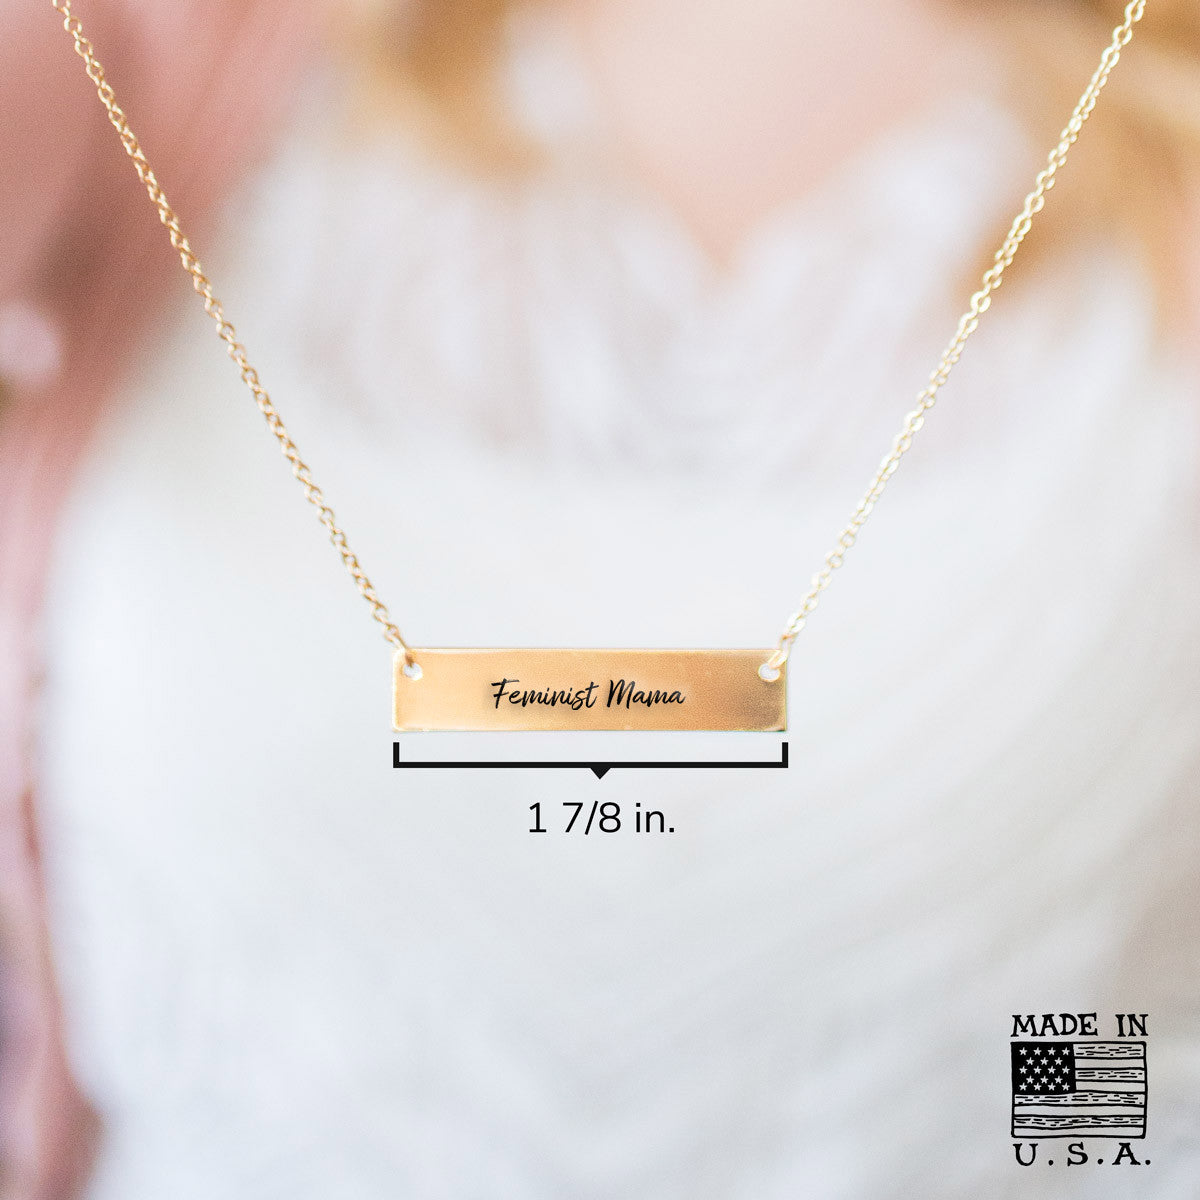 Feminist Mama Gold / Silver Bar Necklace